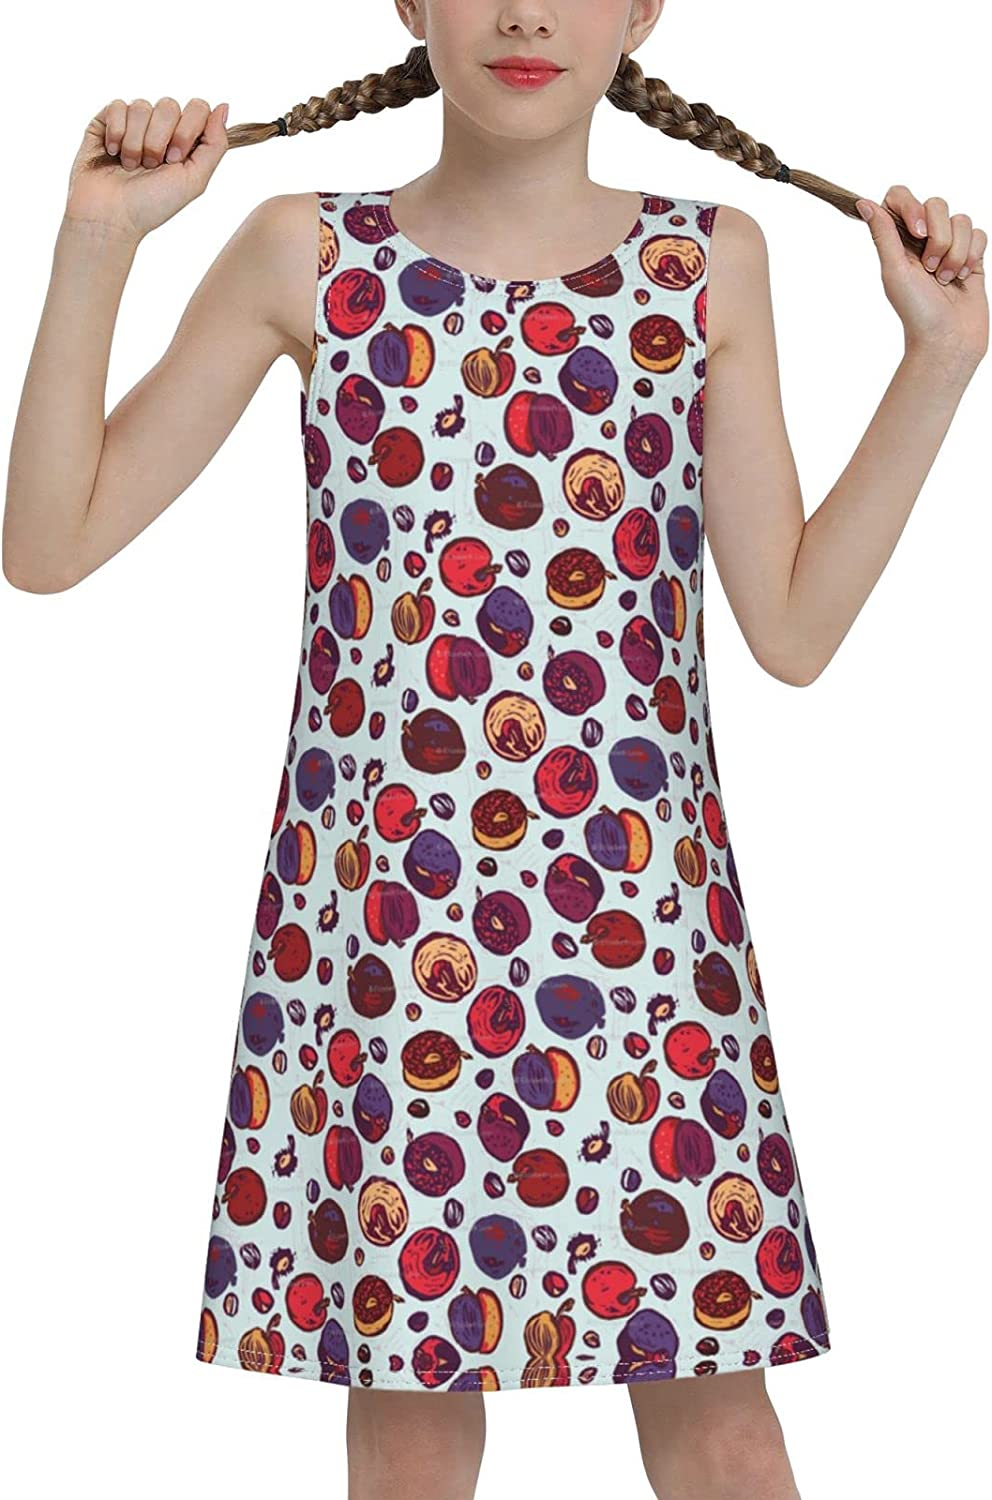 YhrYUGFgf Nuts Sleeveless Dress for Girls Casual Printed Vest Skirt